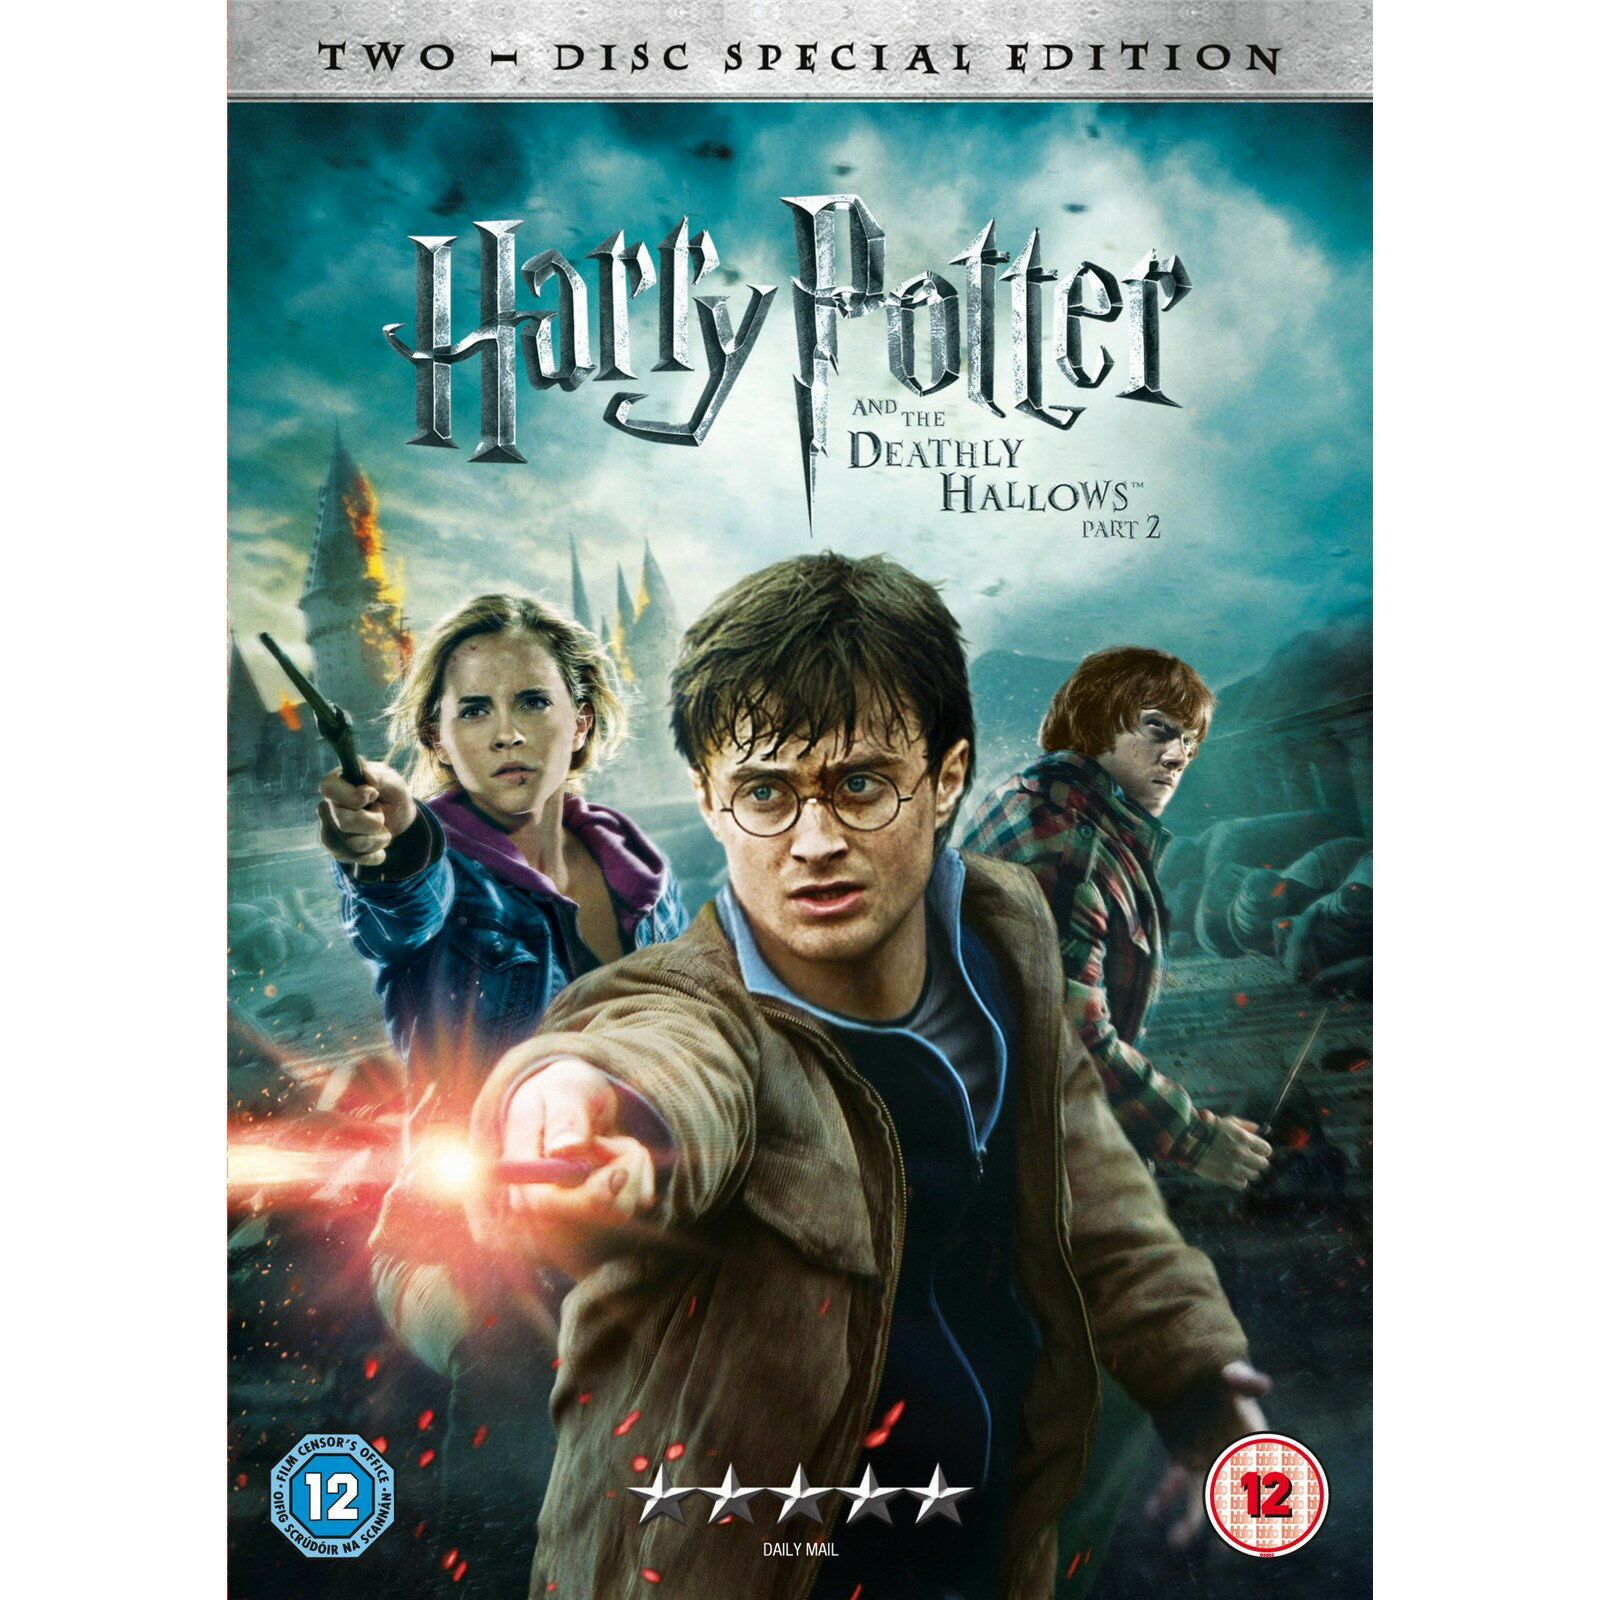 Harry potter and the deathly hallows: part 2 - ultimate collectors edition: image 3